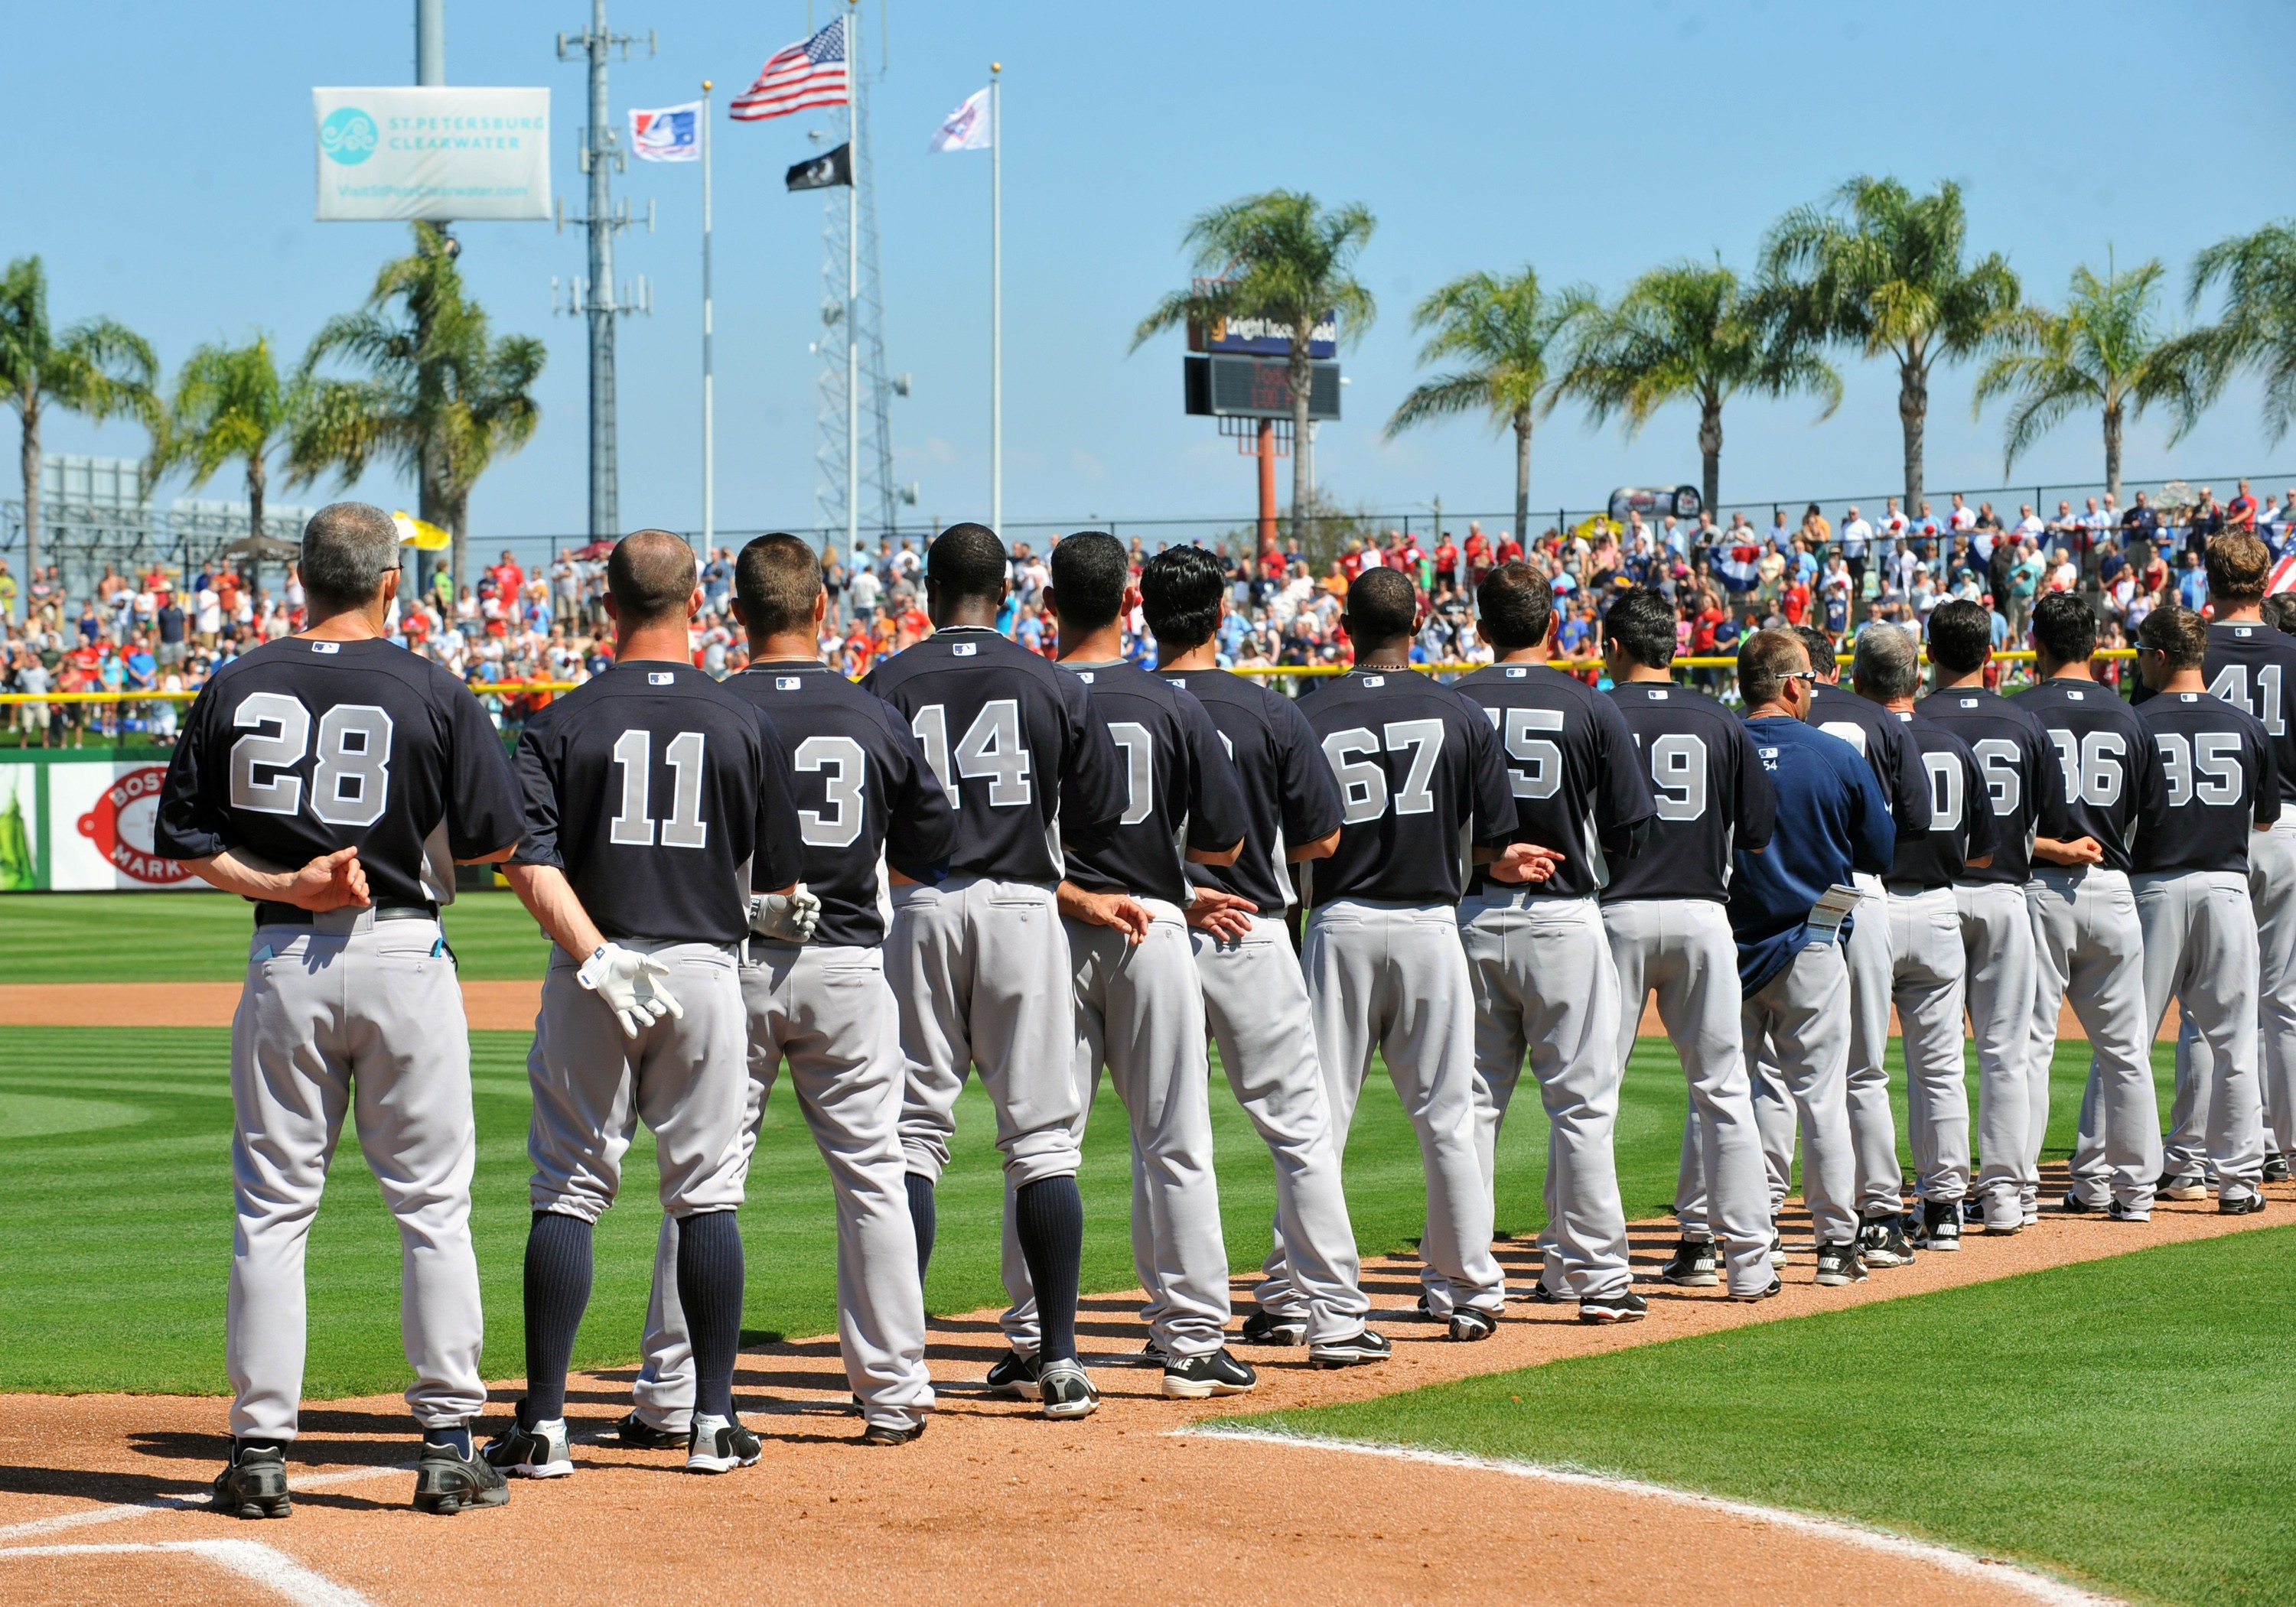 Res: 3001x2101, Epic Wallpaper New York Yankees